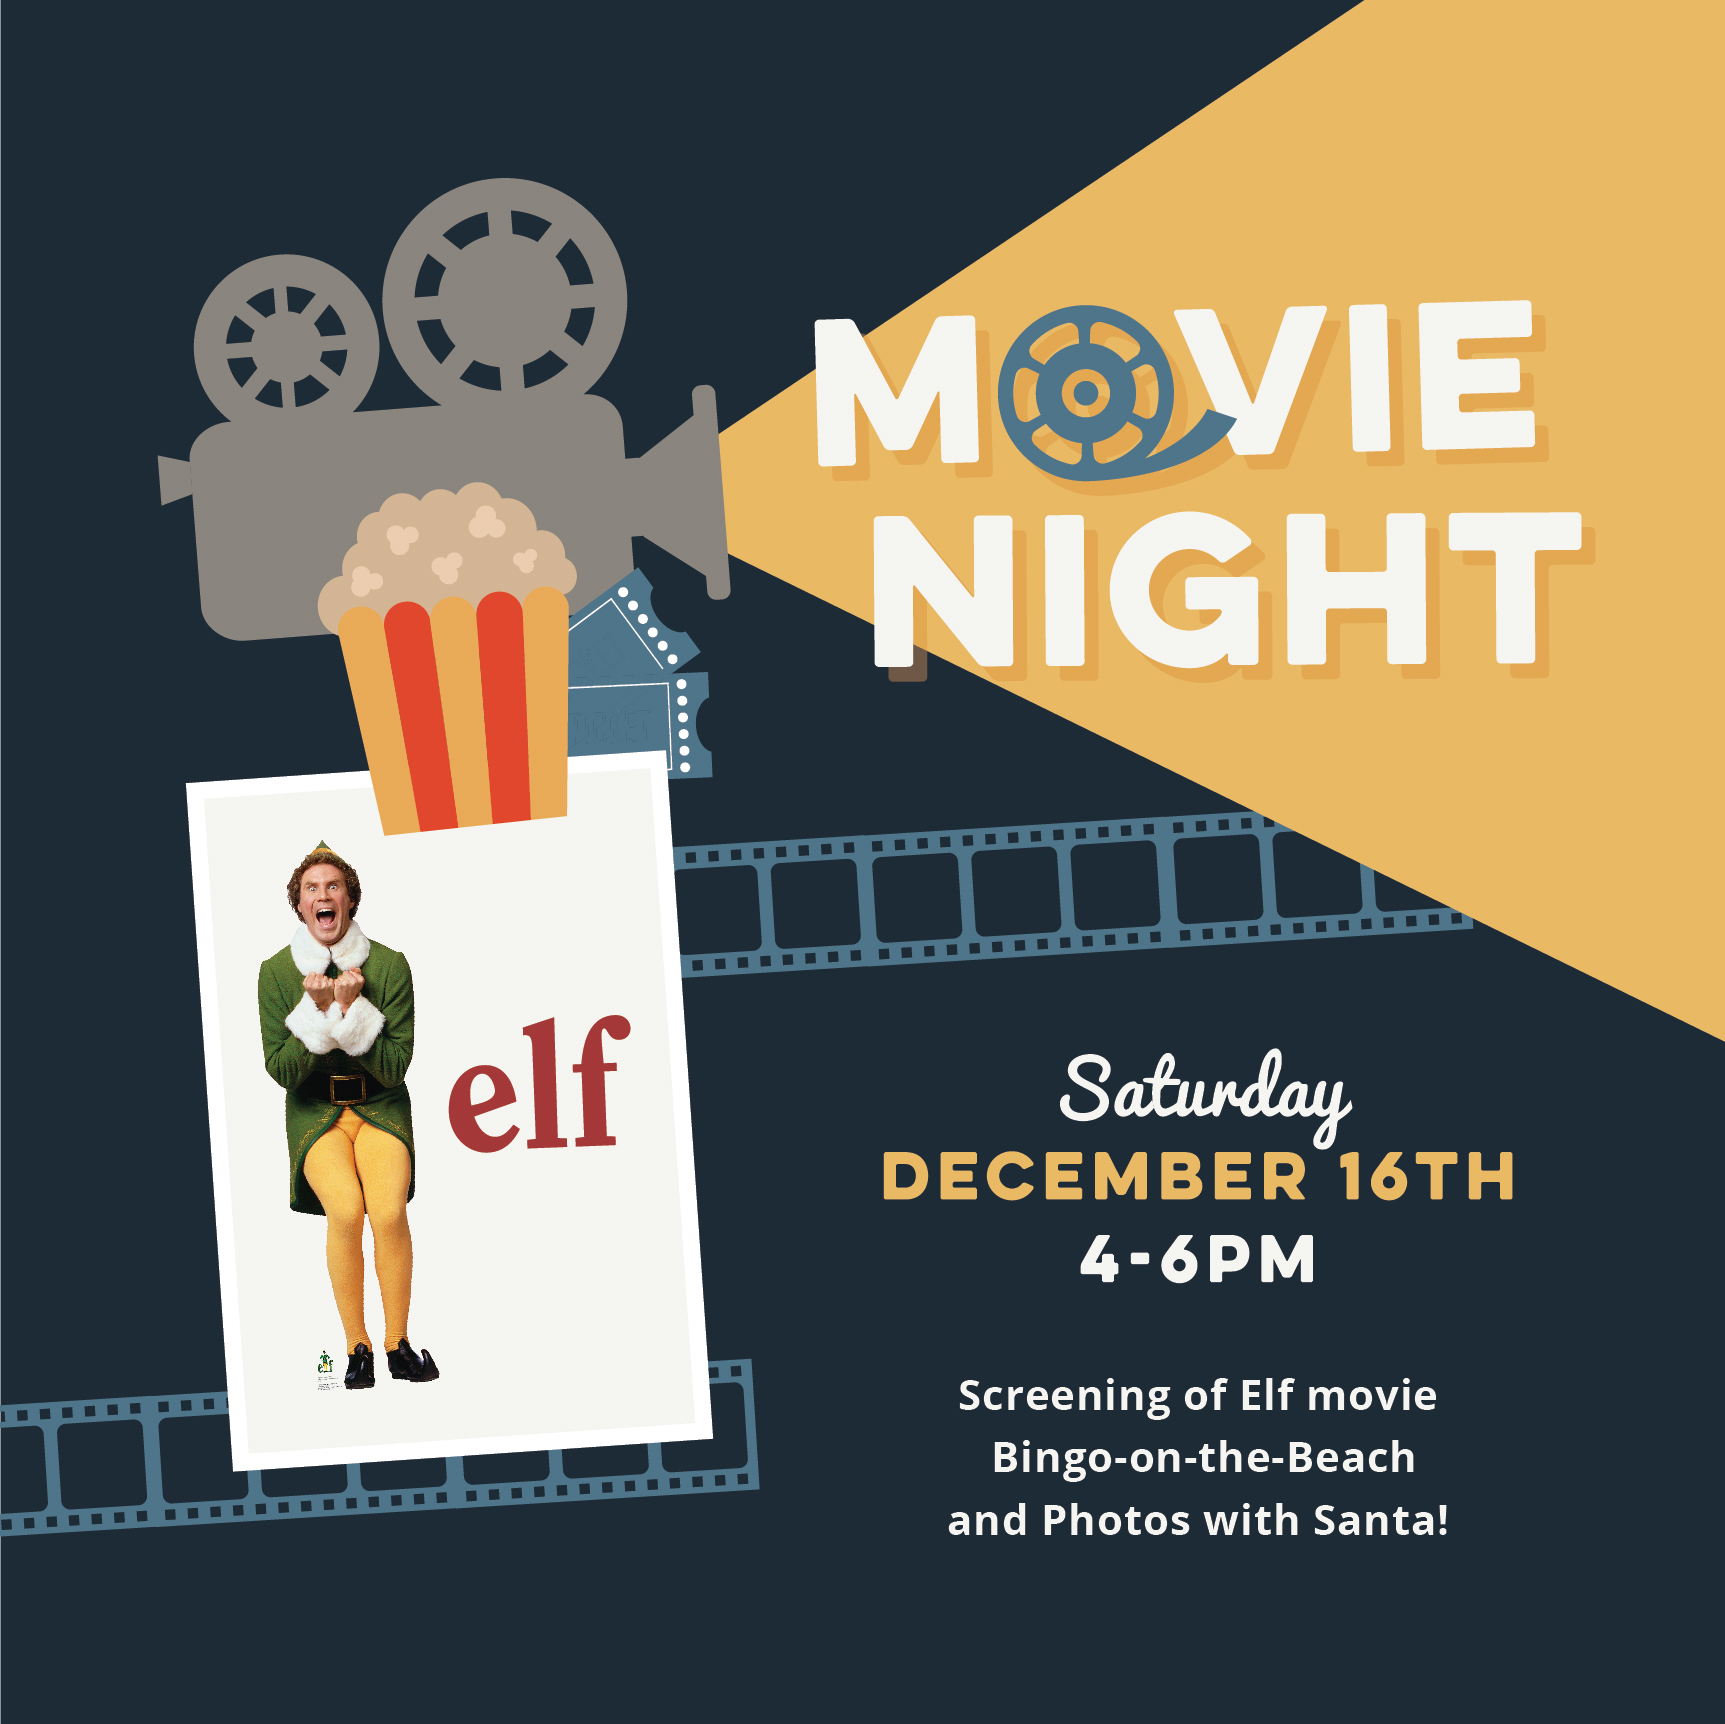 movie night christmas elf park poster holiday 16th 7pm sunwest festivities december join perfect